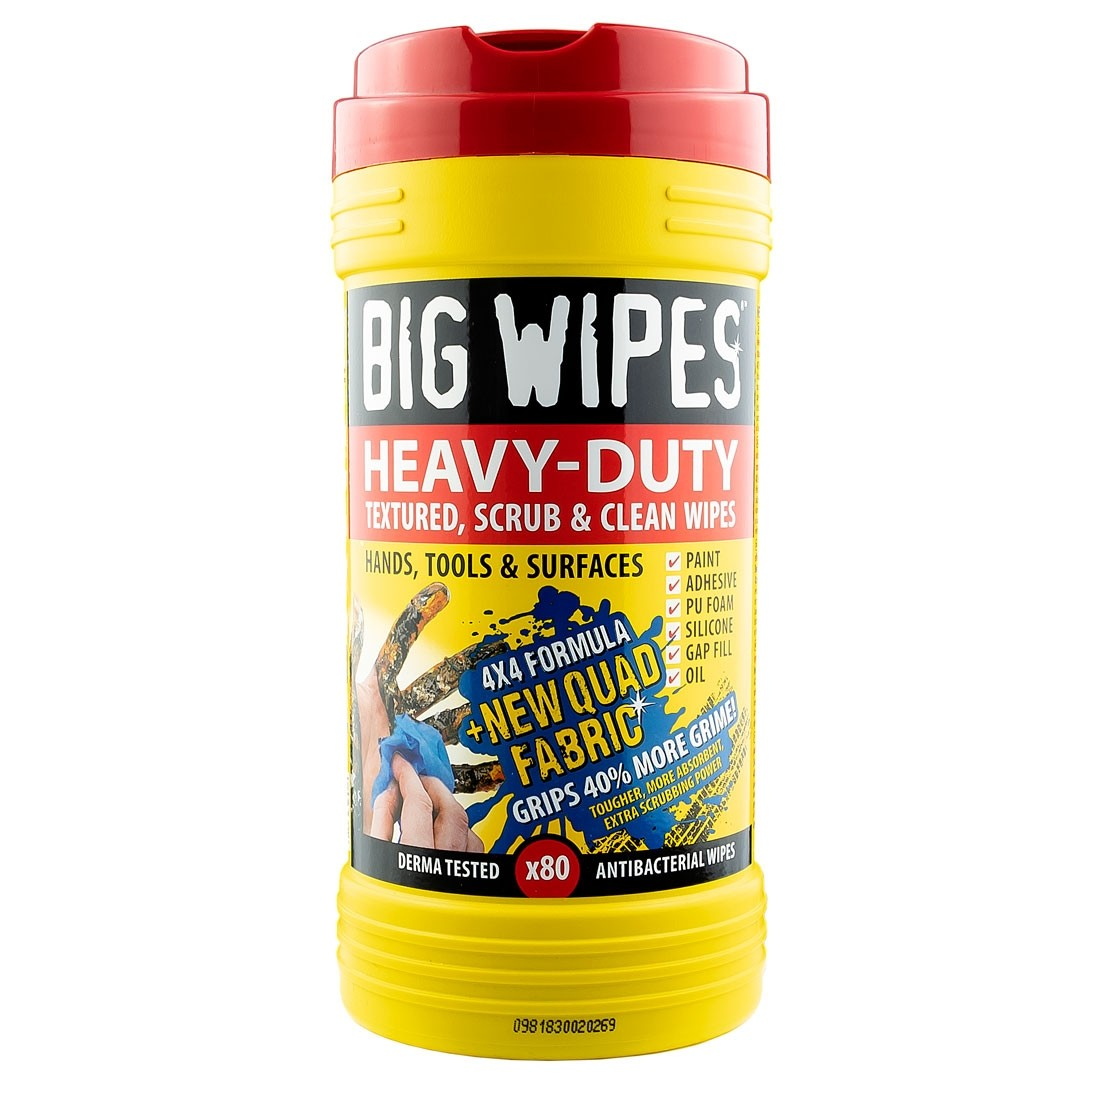 Big Wipes Industrial Antibacterial Scrub Heavy Duty Hand Cleaning Wipes Pack of 1